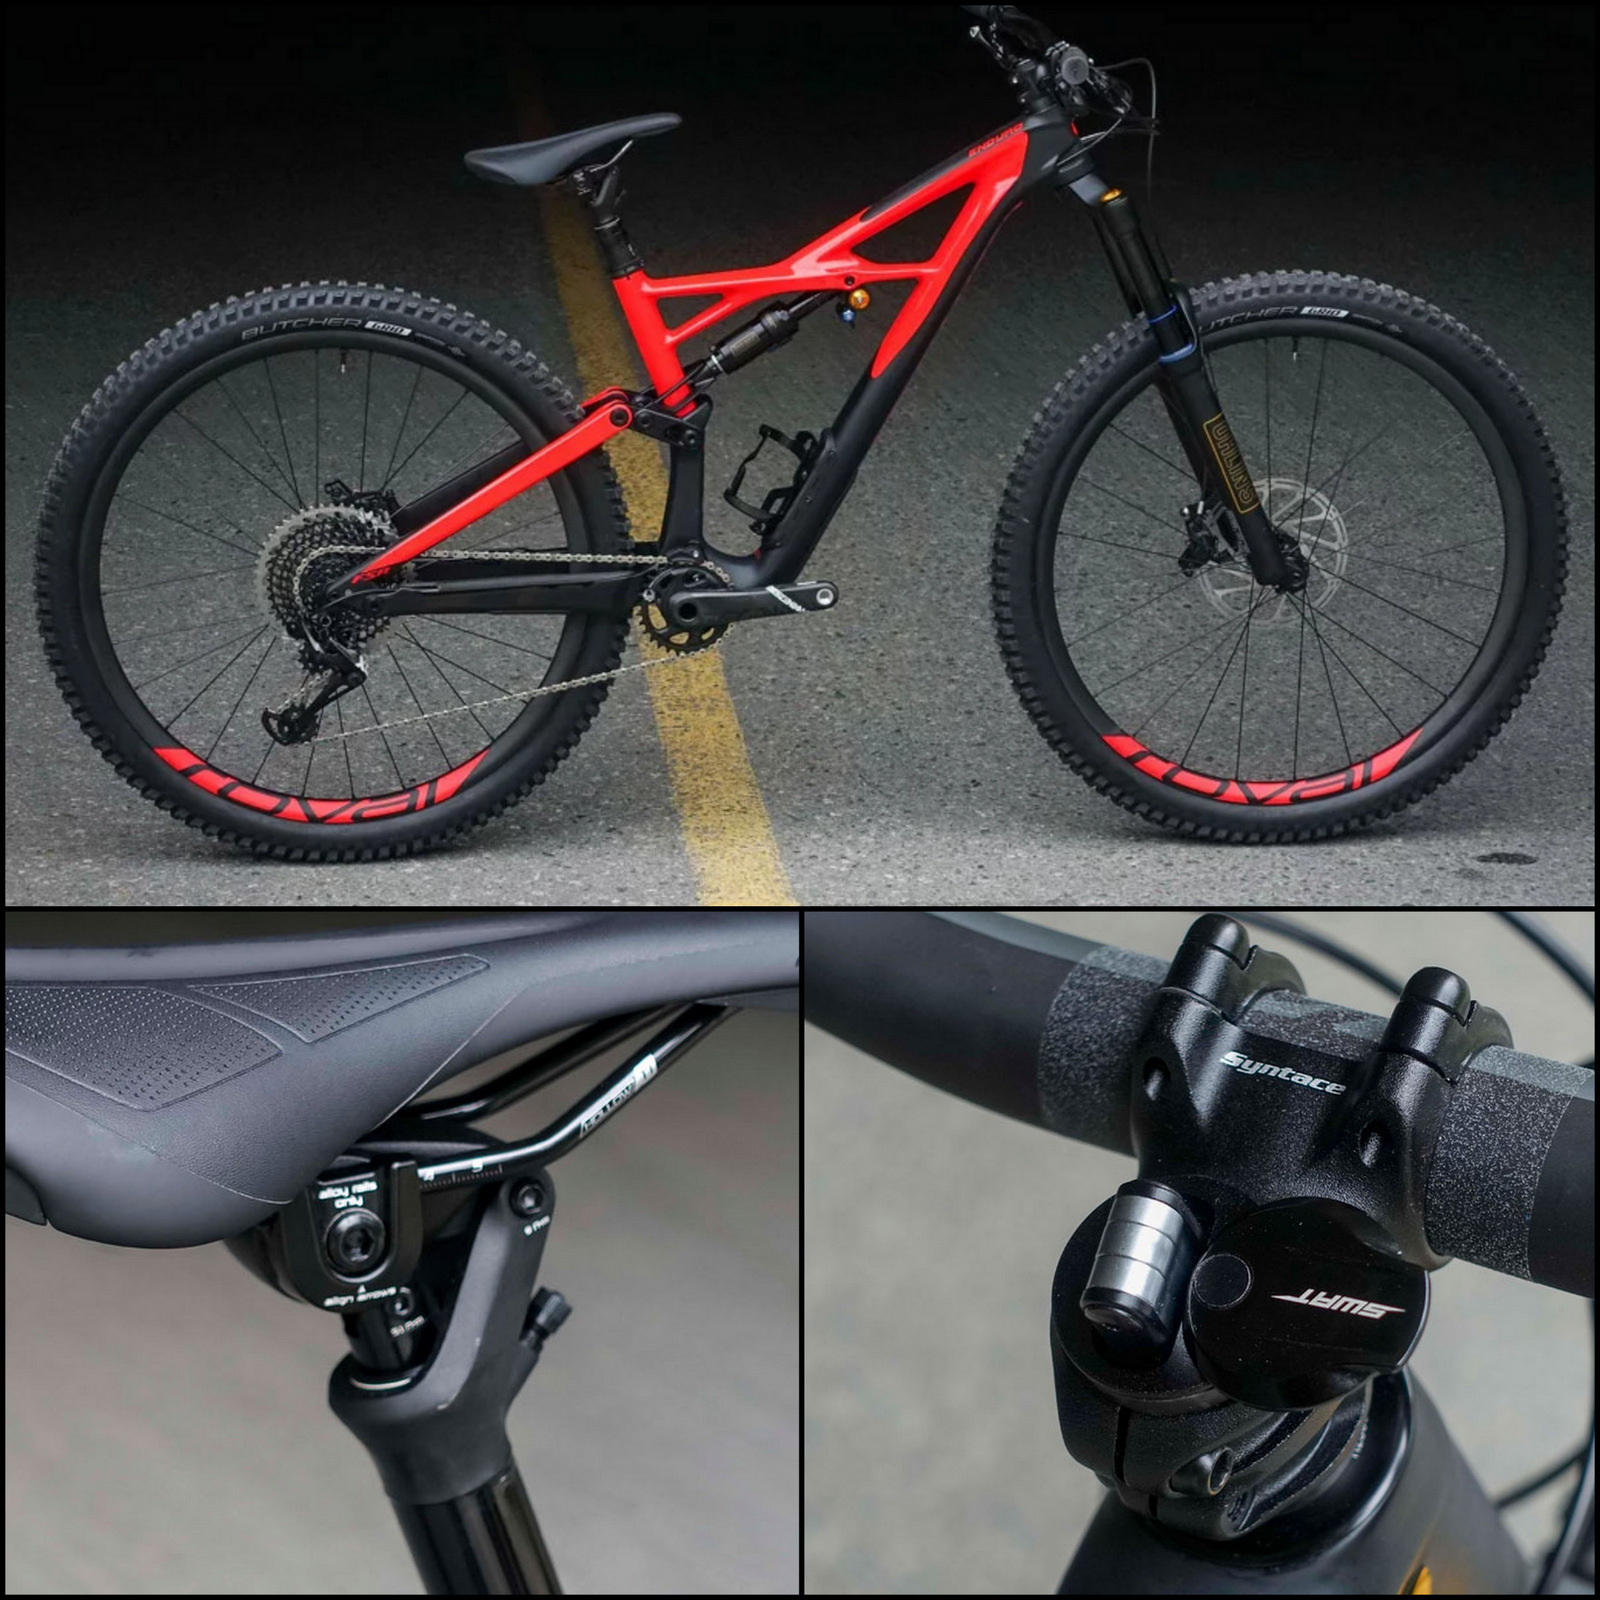 2020 Specialized Enduro First Ride Review